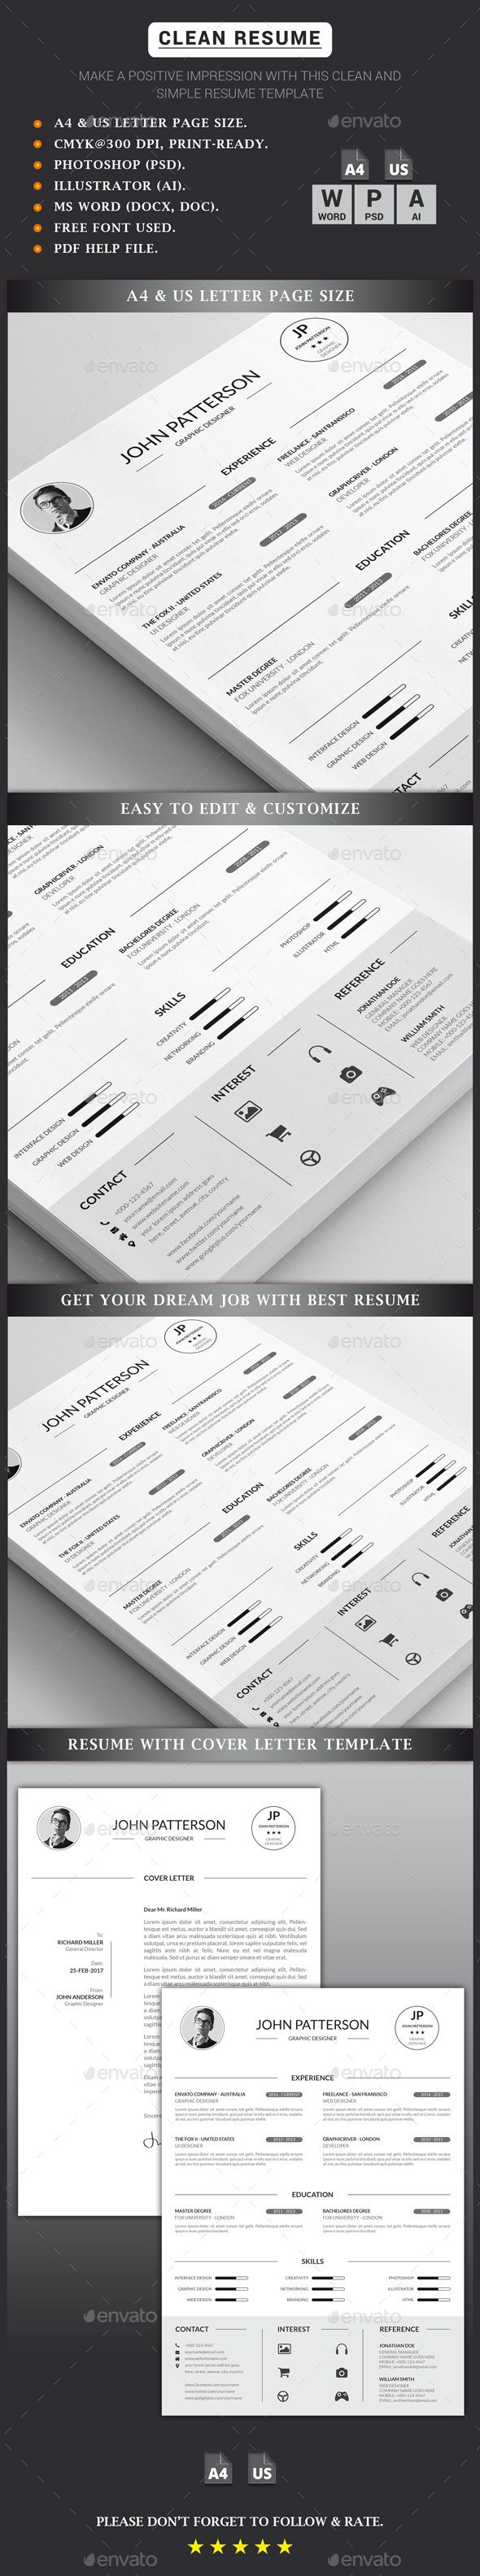 resume templates free word 2010%0A CV by FeatureDesigns